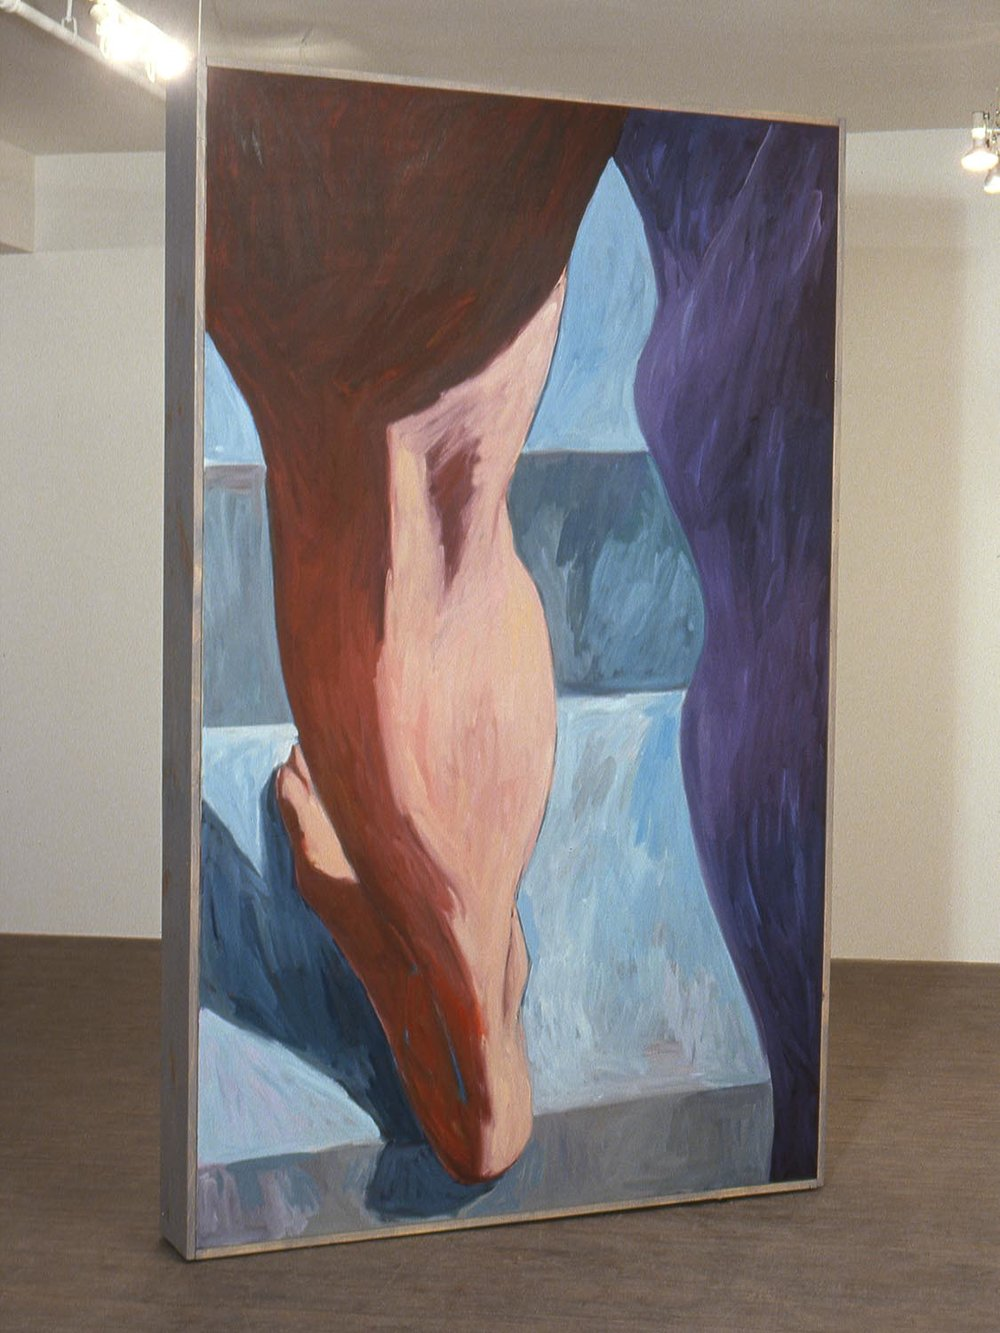 Sous la jupe (Under The Skirt), 1988